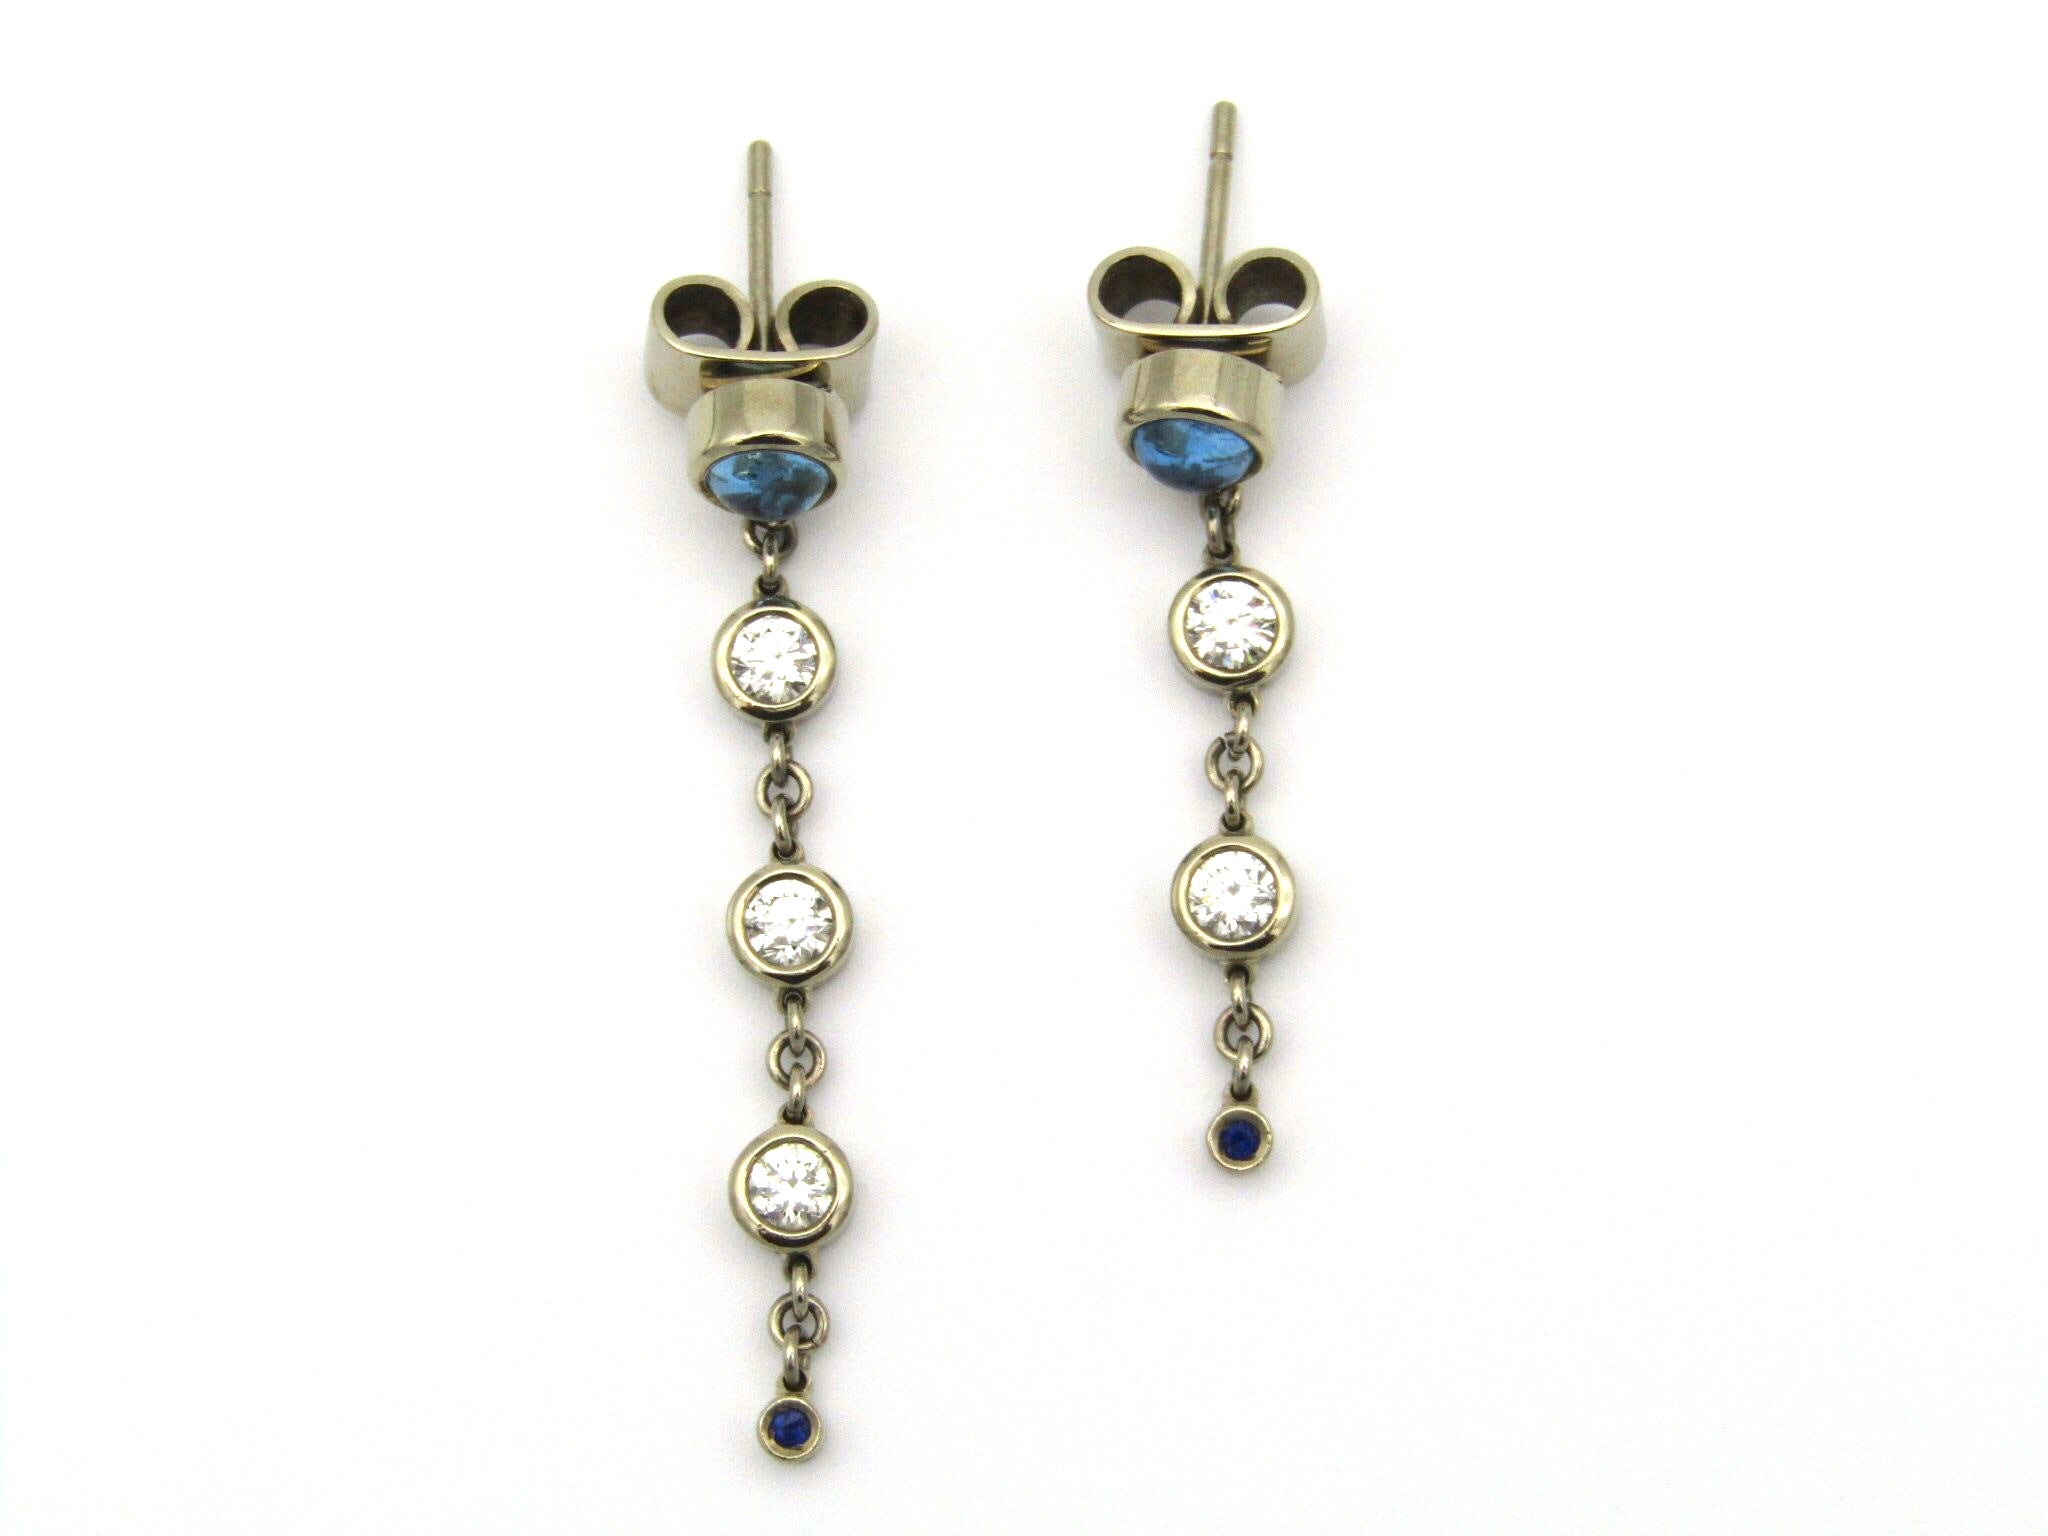 18kt gold diamond and blue topaz earrings by Orpheo.